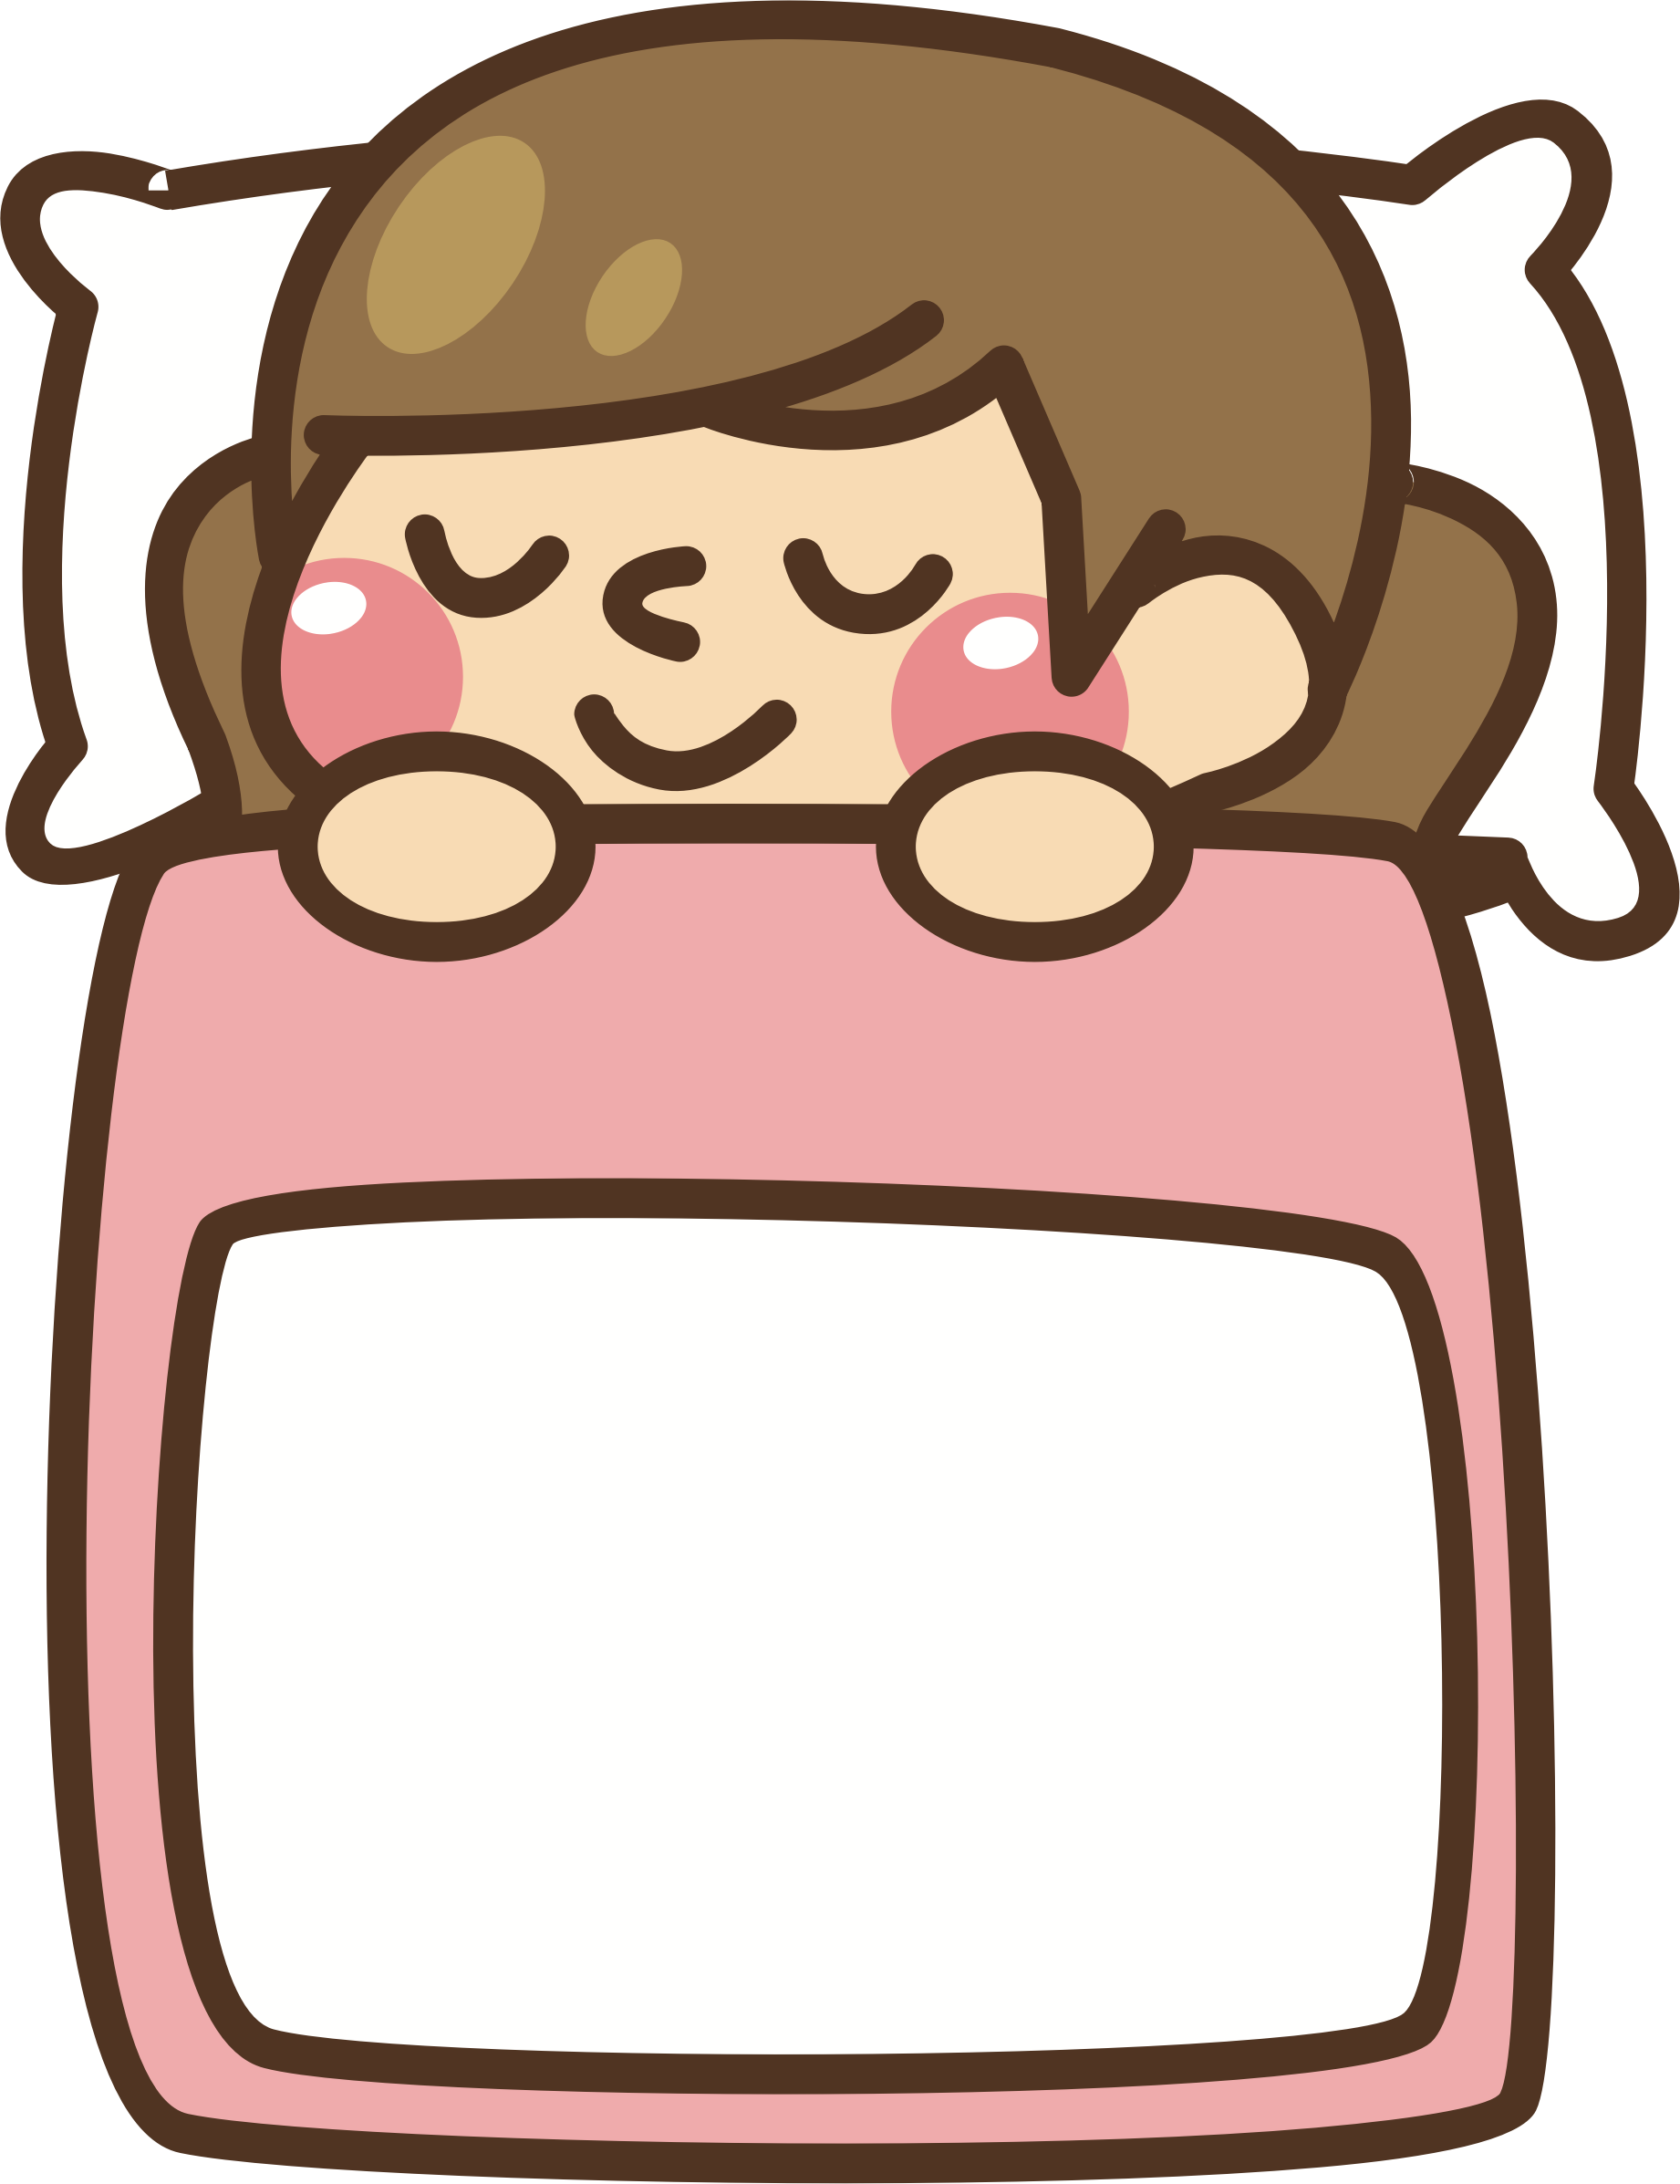 image library stock Bedtime clipart. Big image png.